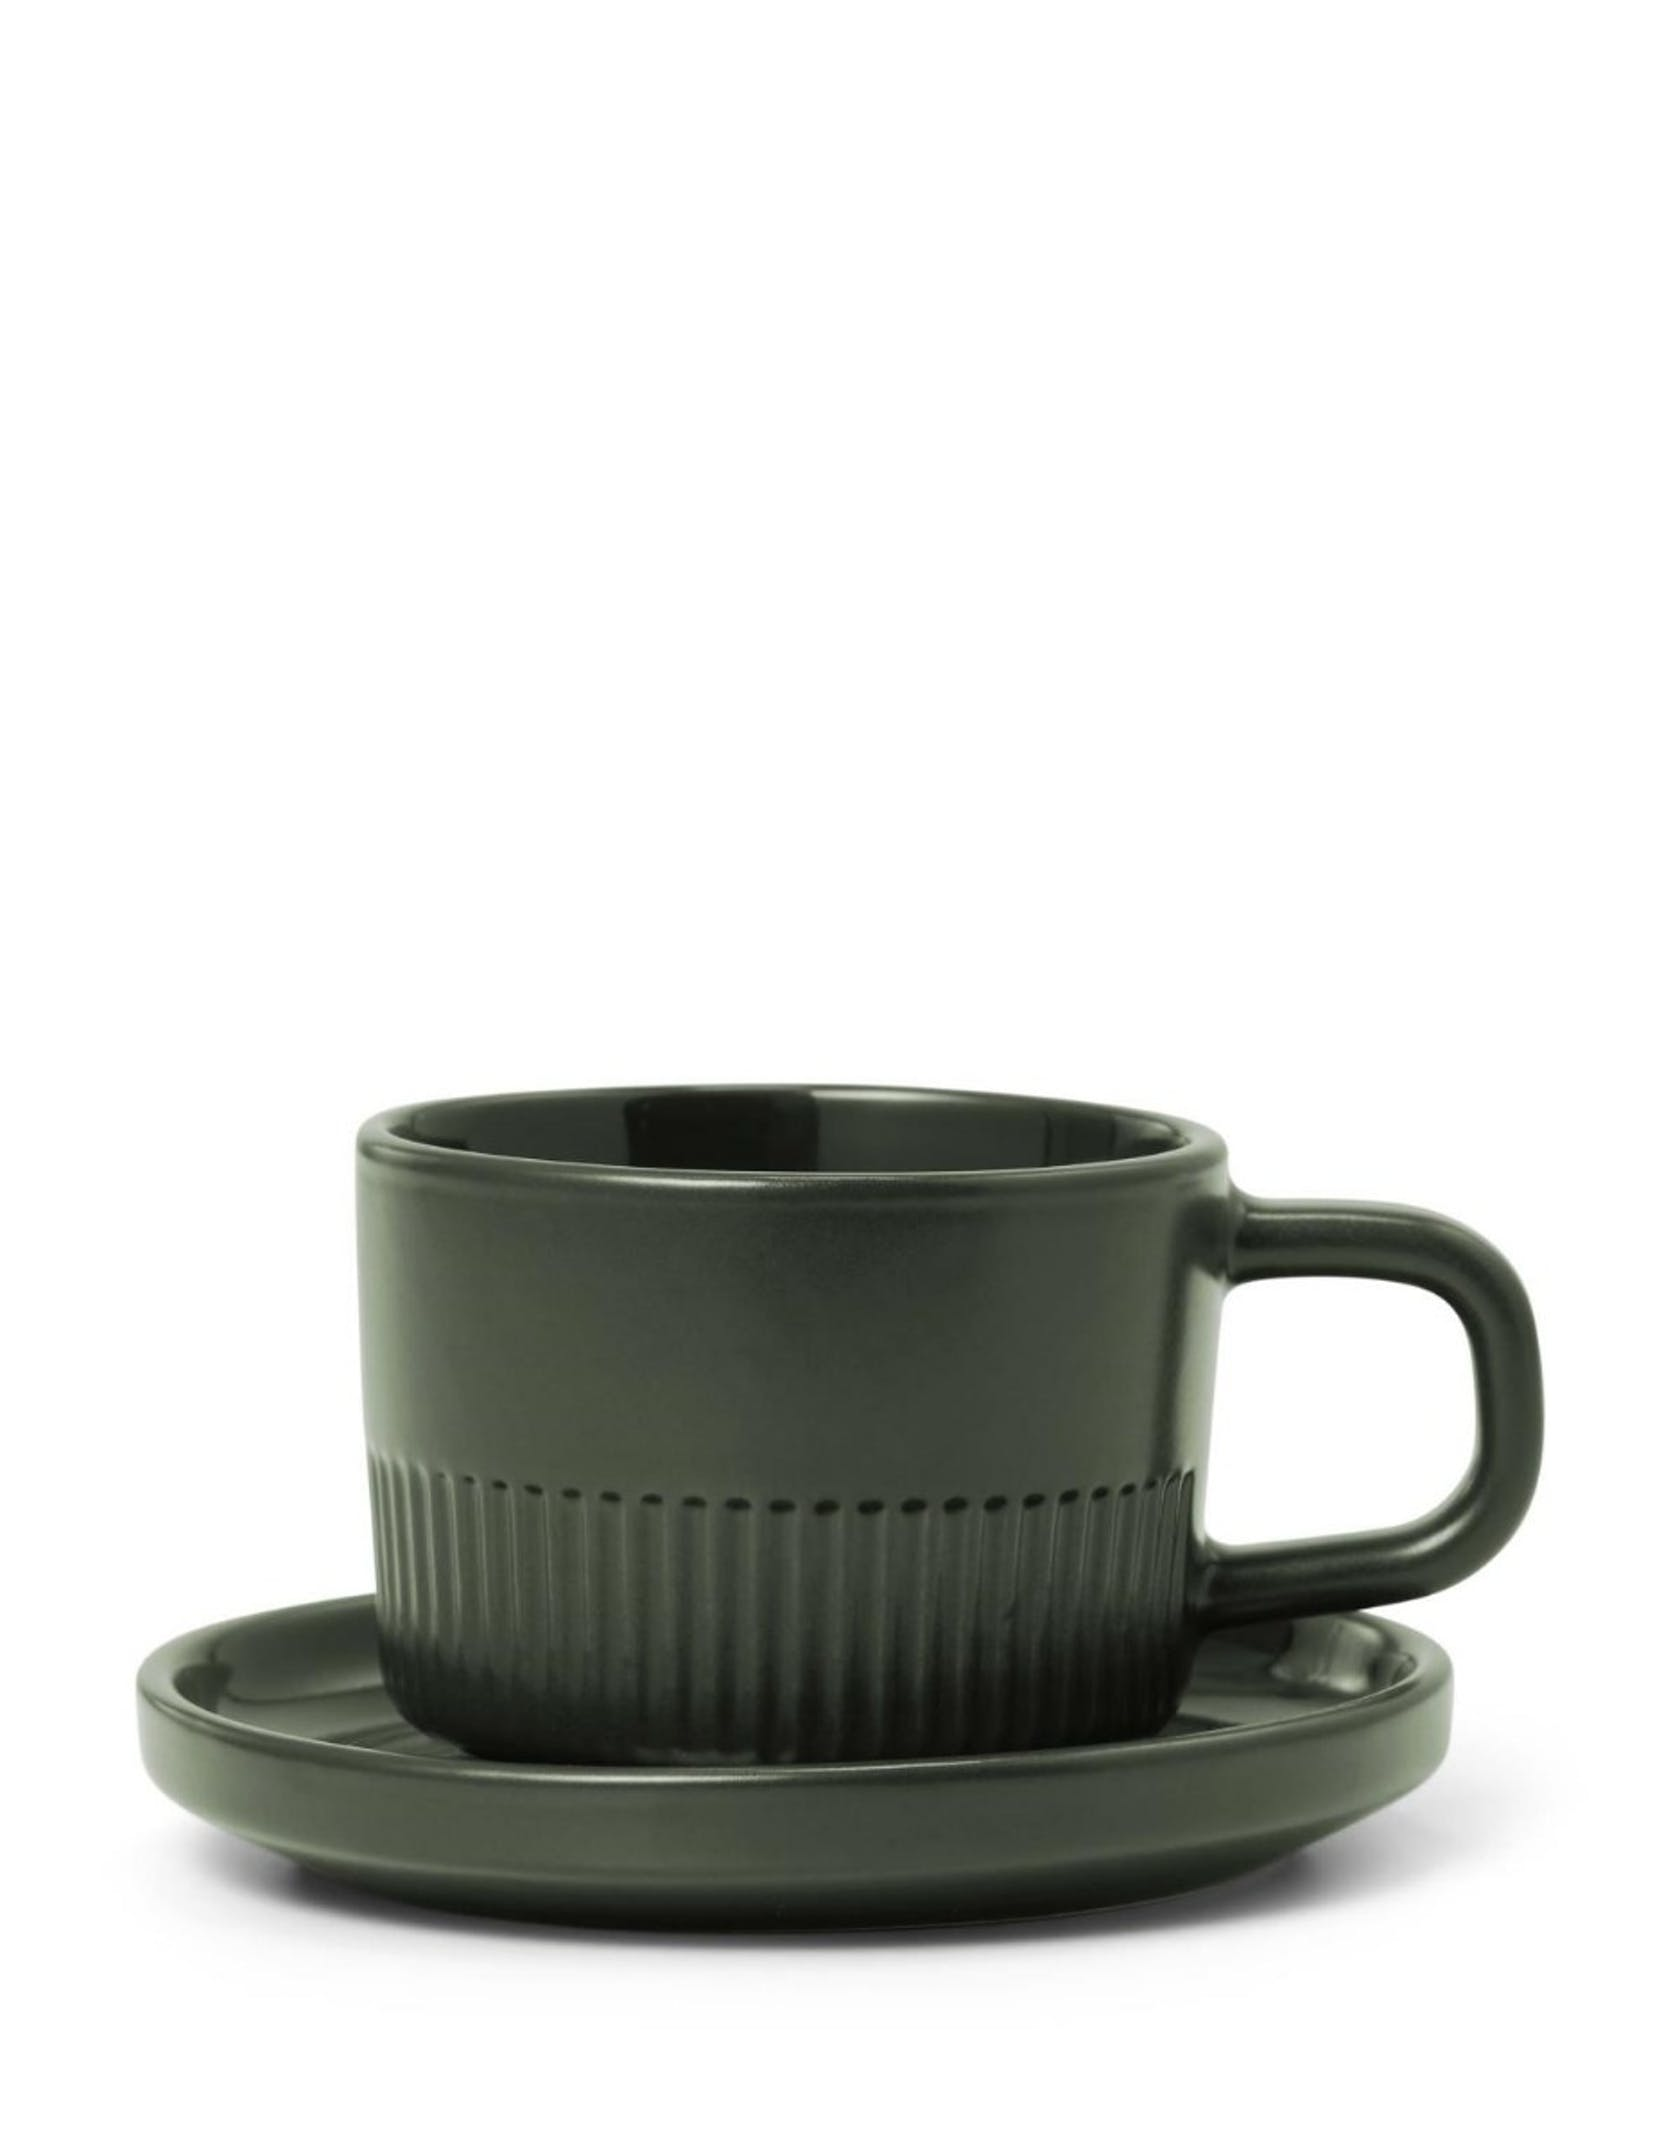 Marc O'Polo Moments Olive Green Espresso Tasse & Untertasse 10 cl